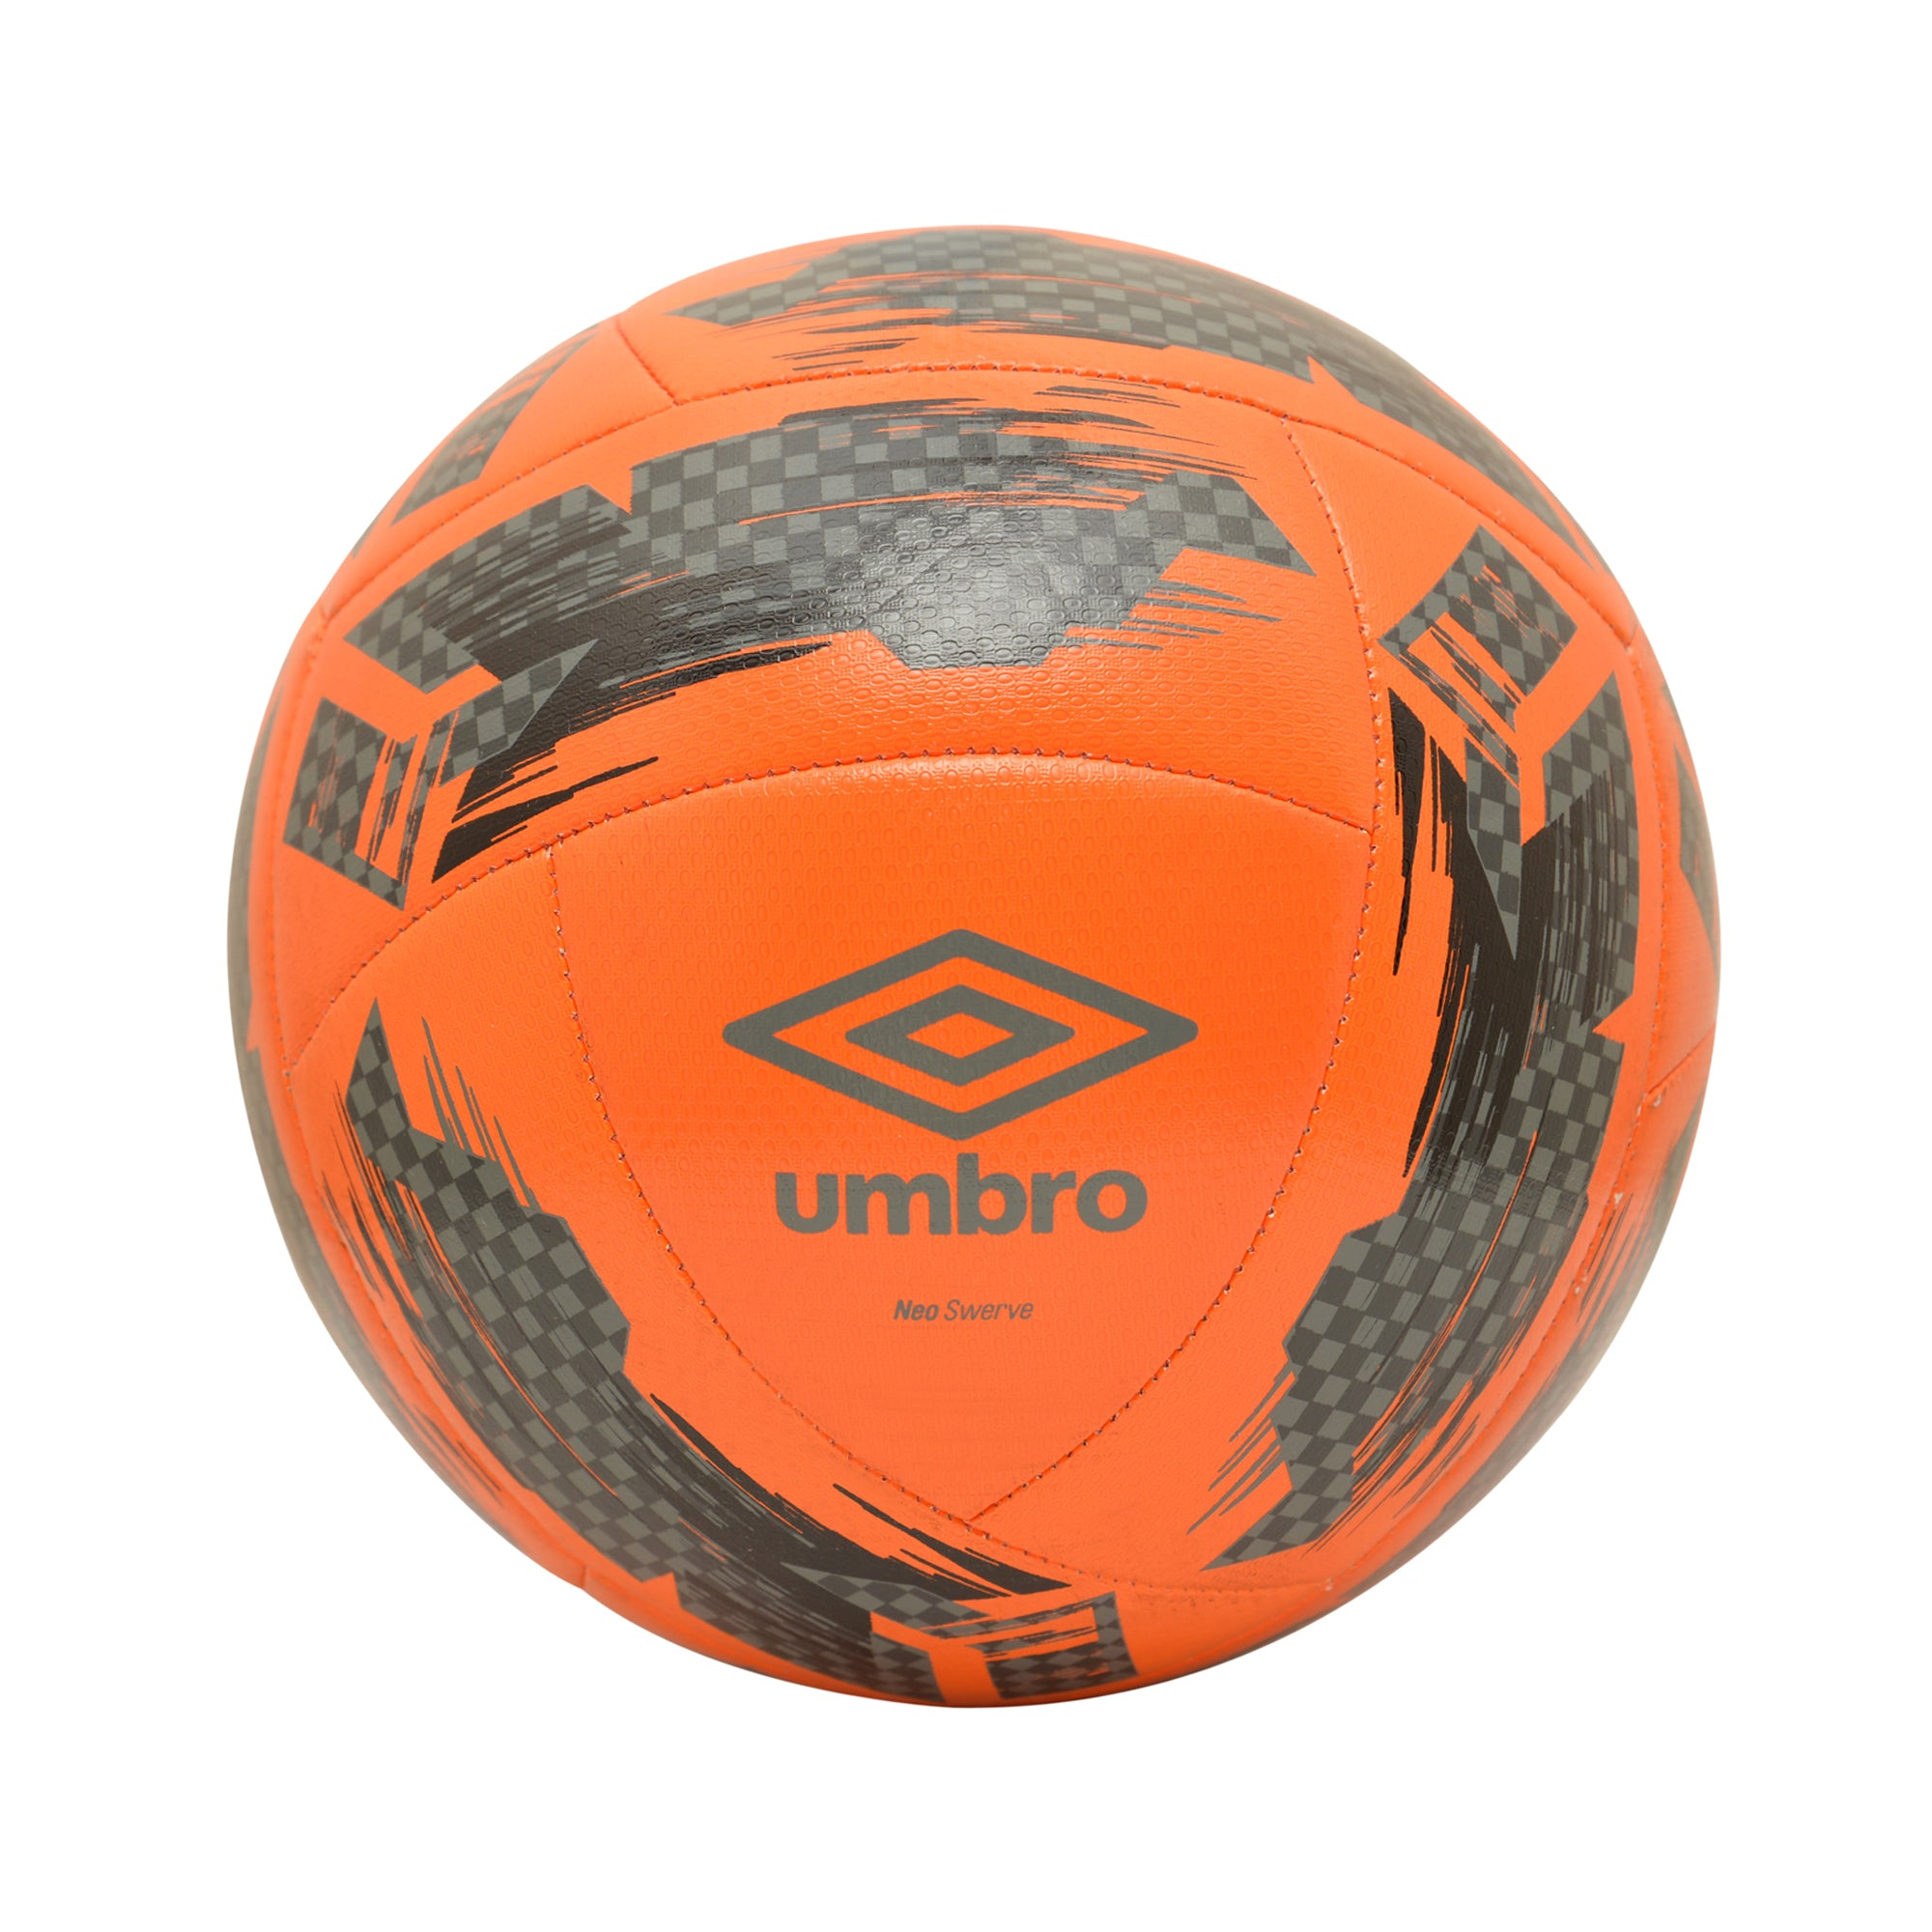 Umbro Neo Swerve - Orange/Black